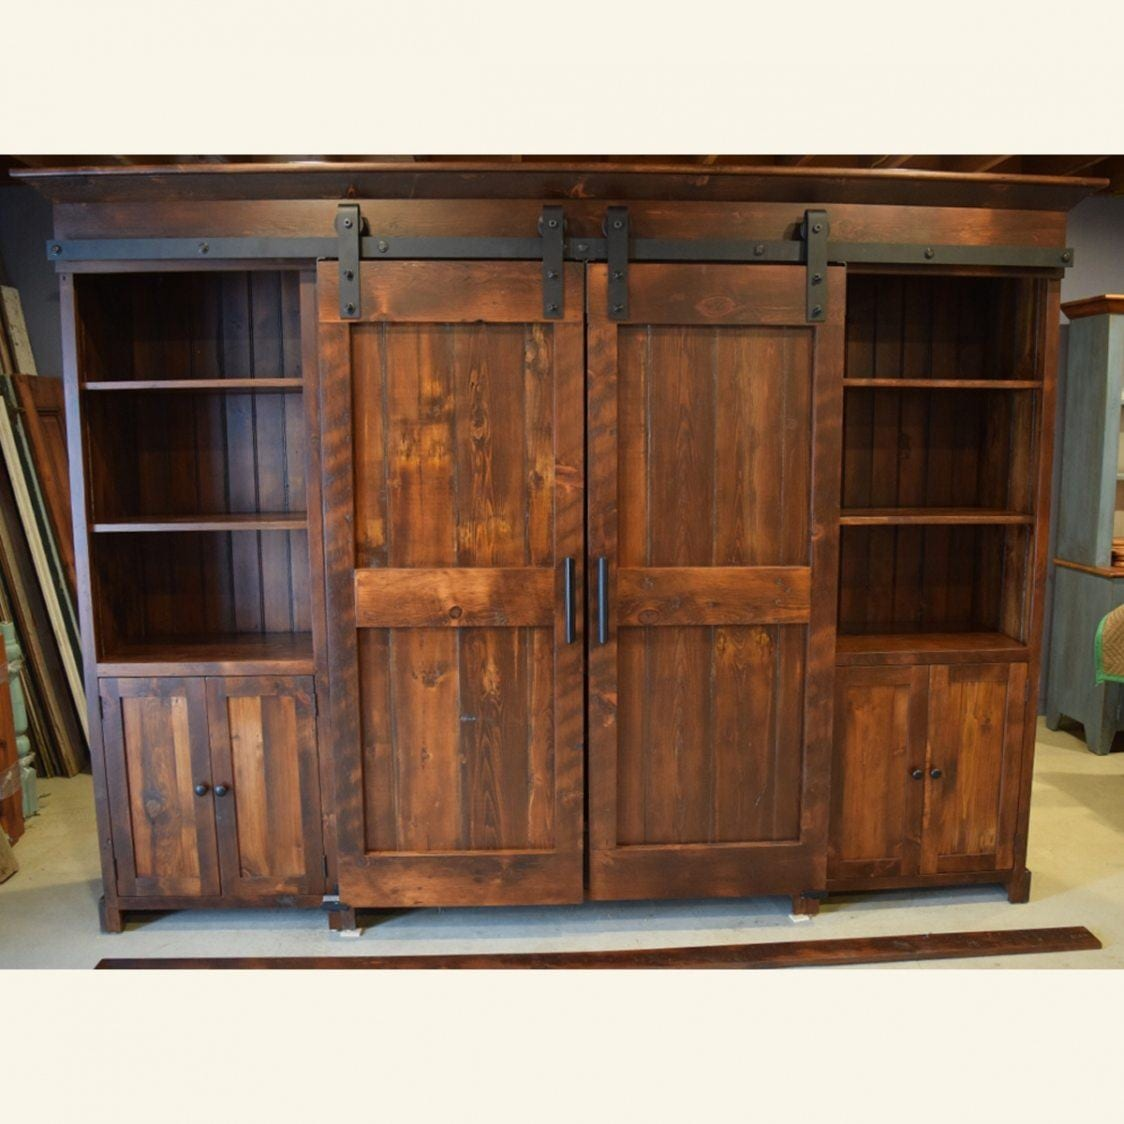 Rustic Low Profile Barn Door Entertainment Cabinet Furniture From The Barn